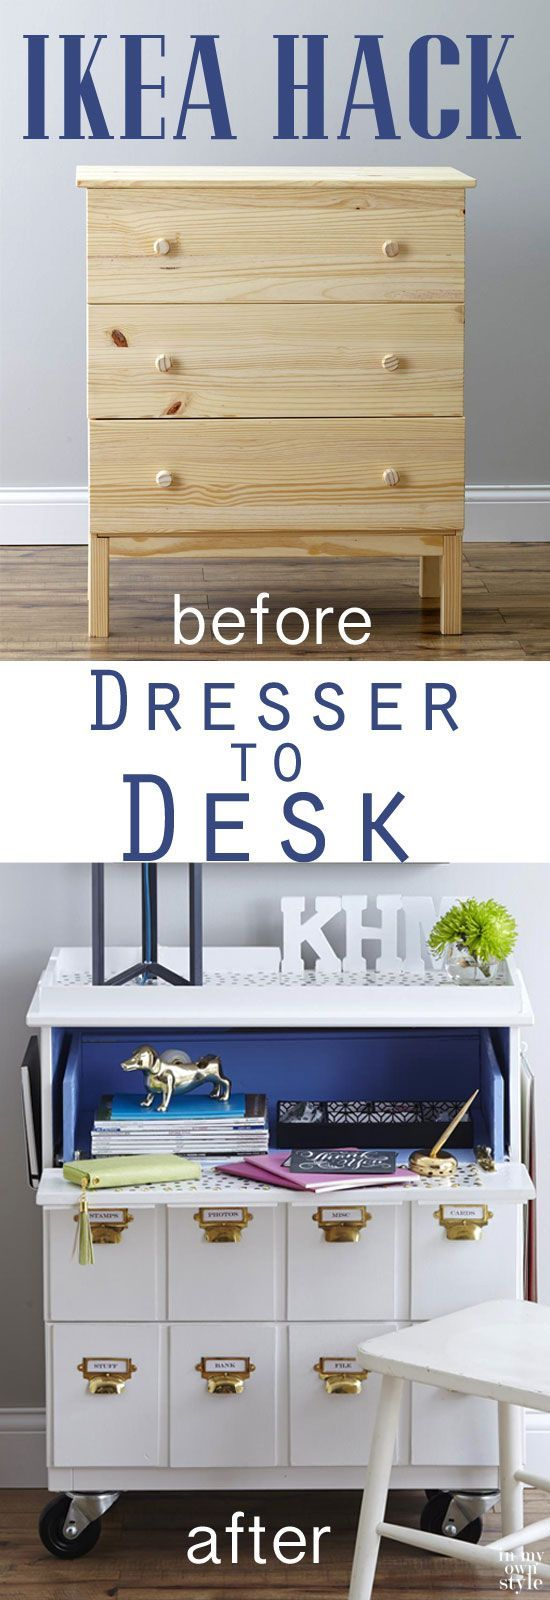 Ikea Hack Tarva Dresser into a Rolling Design Makeover | In My Own Style